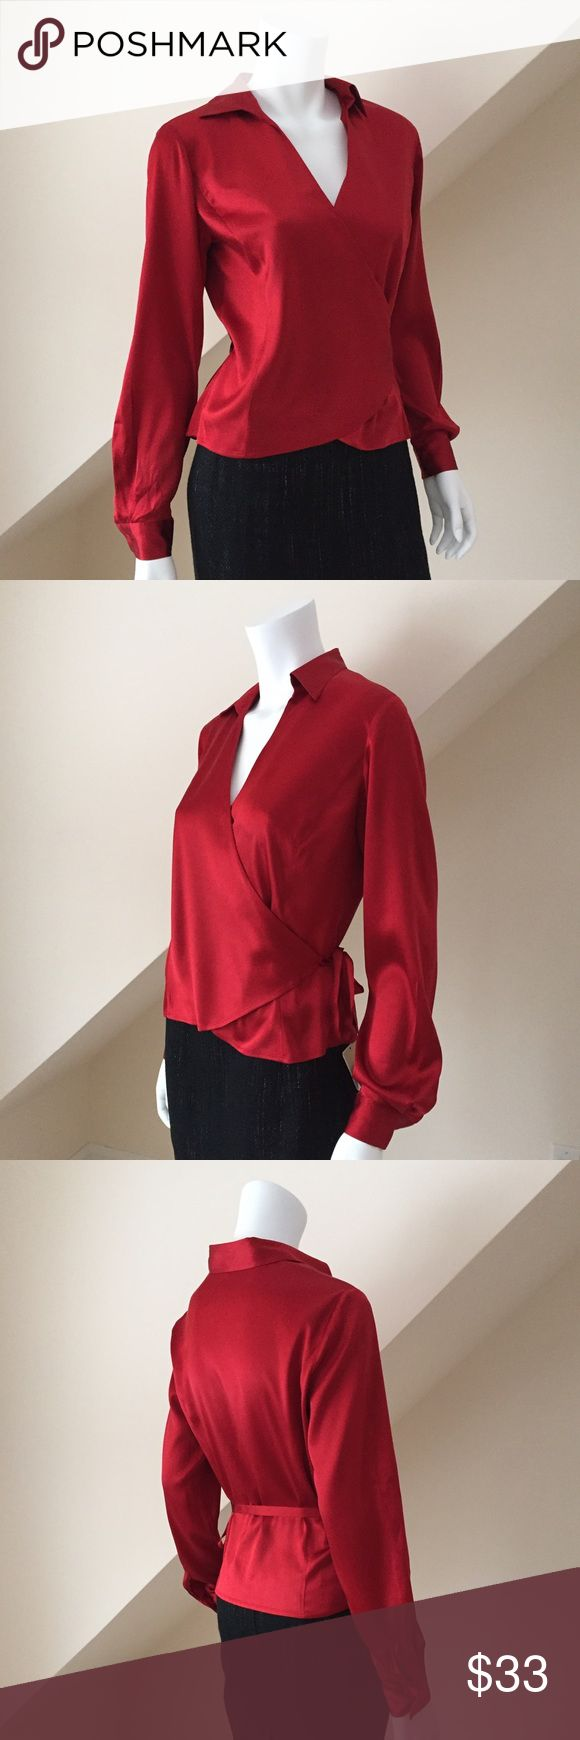 Ann Taylor Silk Blouse Ann Taylor Silk Wrap Blouse...Gorgeous shade of ruby red!...crafted from pure silk, this wardrobe essential defines refined...Point collar...Long sleeves with shirred cuffs and button closure...Button front...Shirred back yoke...Tulip hem...approx 26 1/4 long...dry clean...pre-loved in excellent condition. Stunning! Size 6. Retail $99 Ann Taylor Tops Blouses